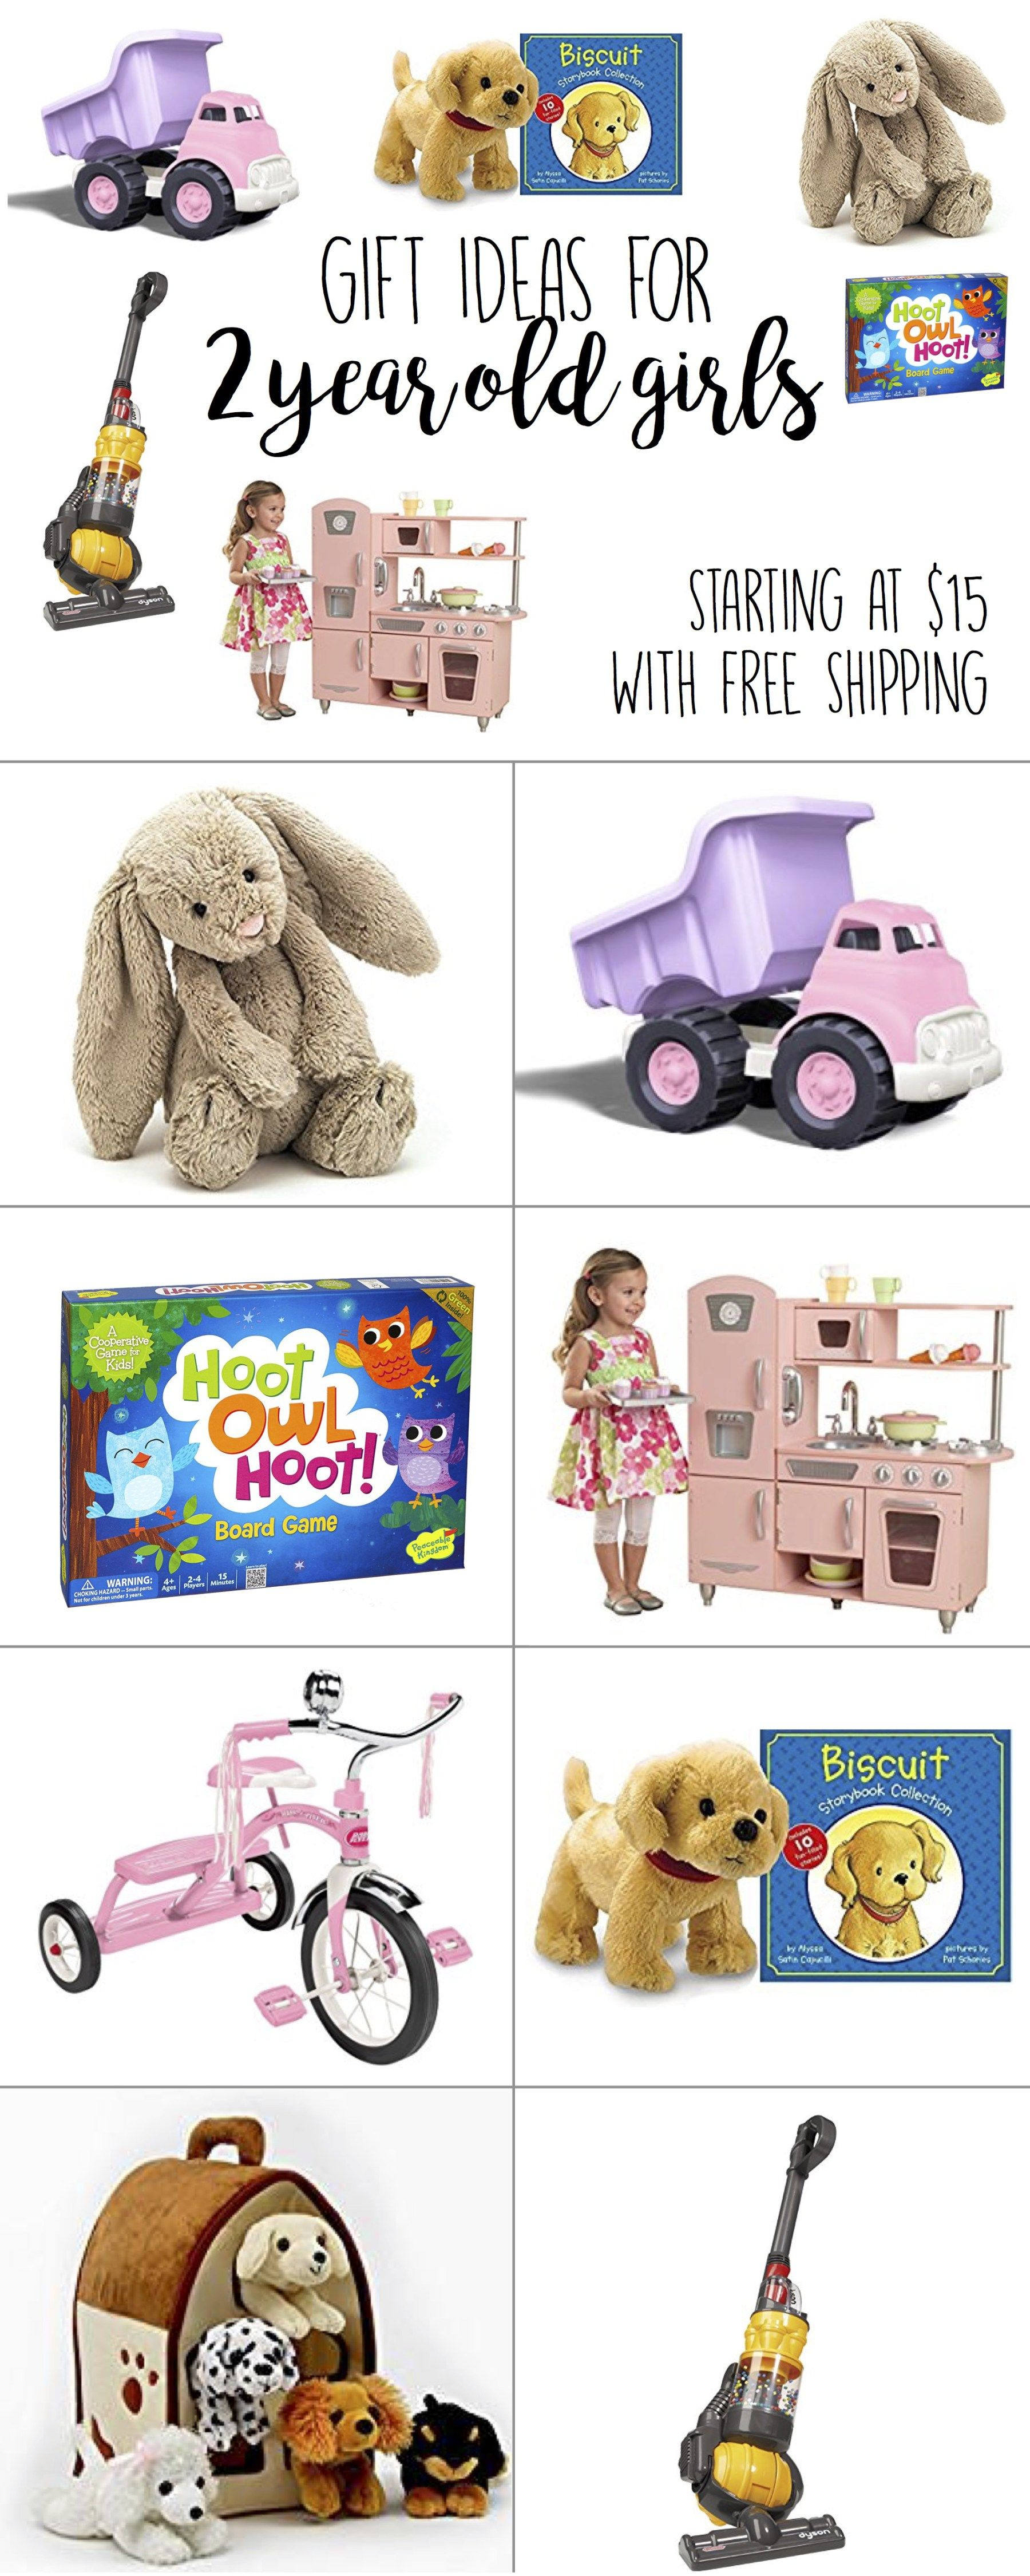 Gifts for 2 Year Old Girls